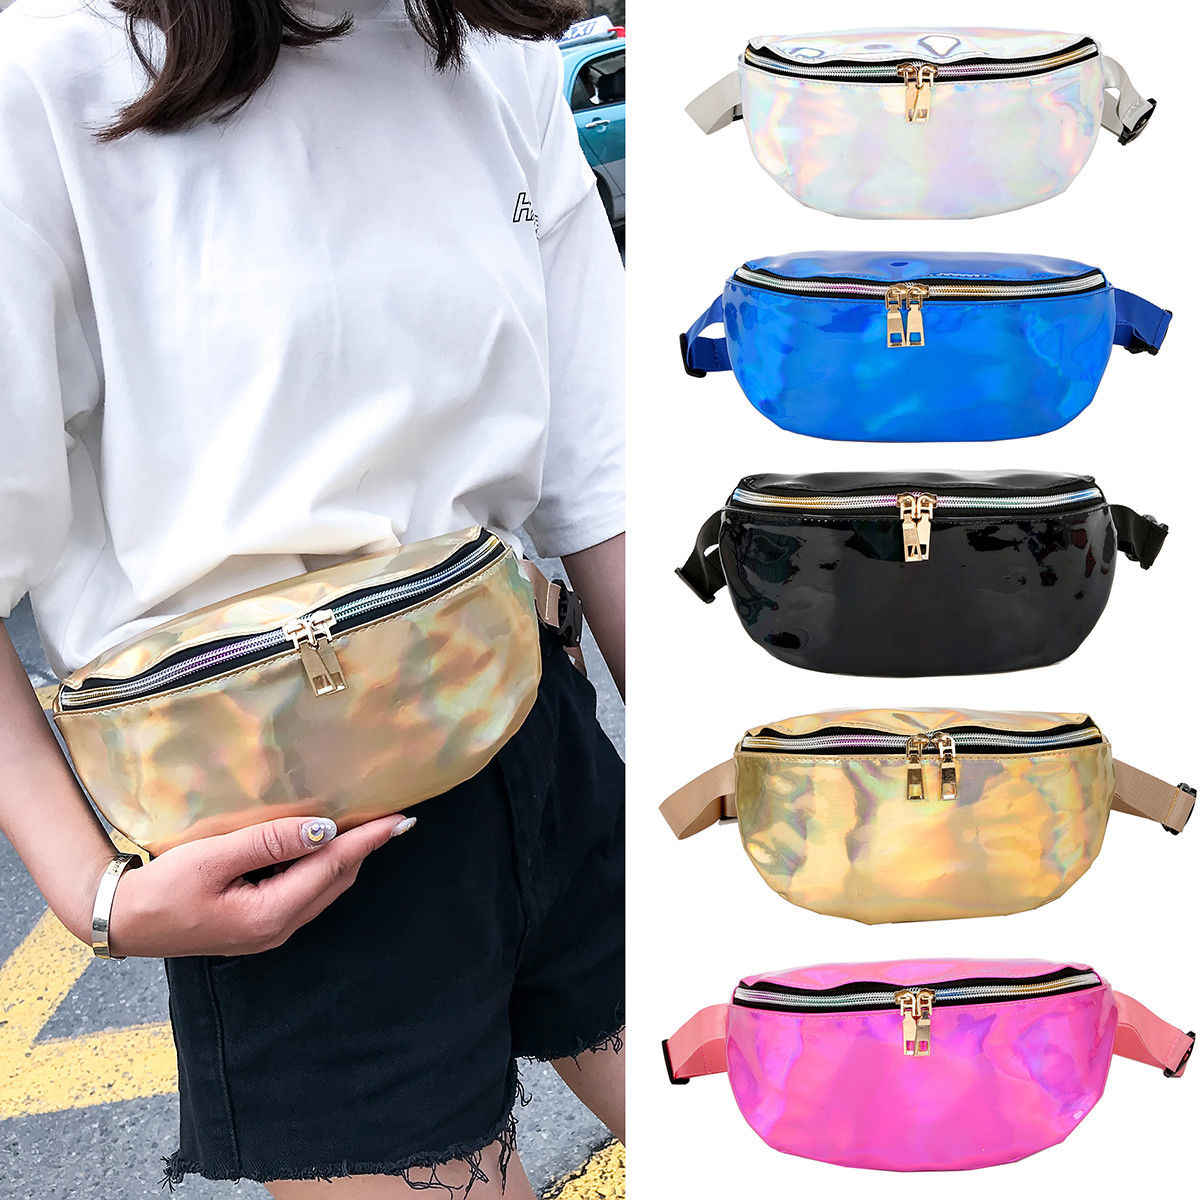 a7d46ad69776 Women Bum Bag Fanny Pack Pouch Travel Waist Festival Money Belt Leather  Holiday Wallet Pouch Hip Purse Travel Bag